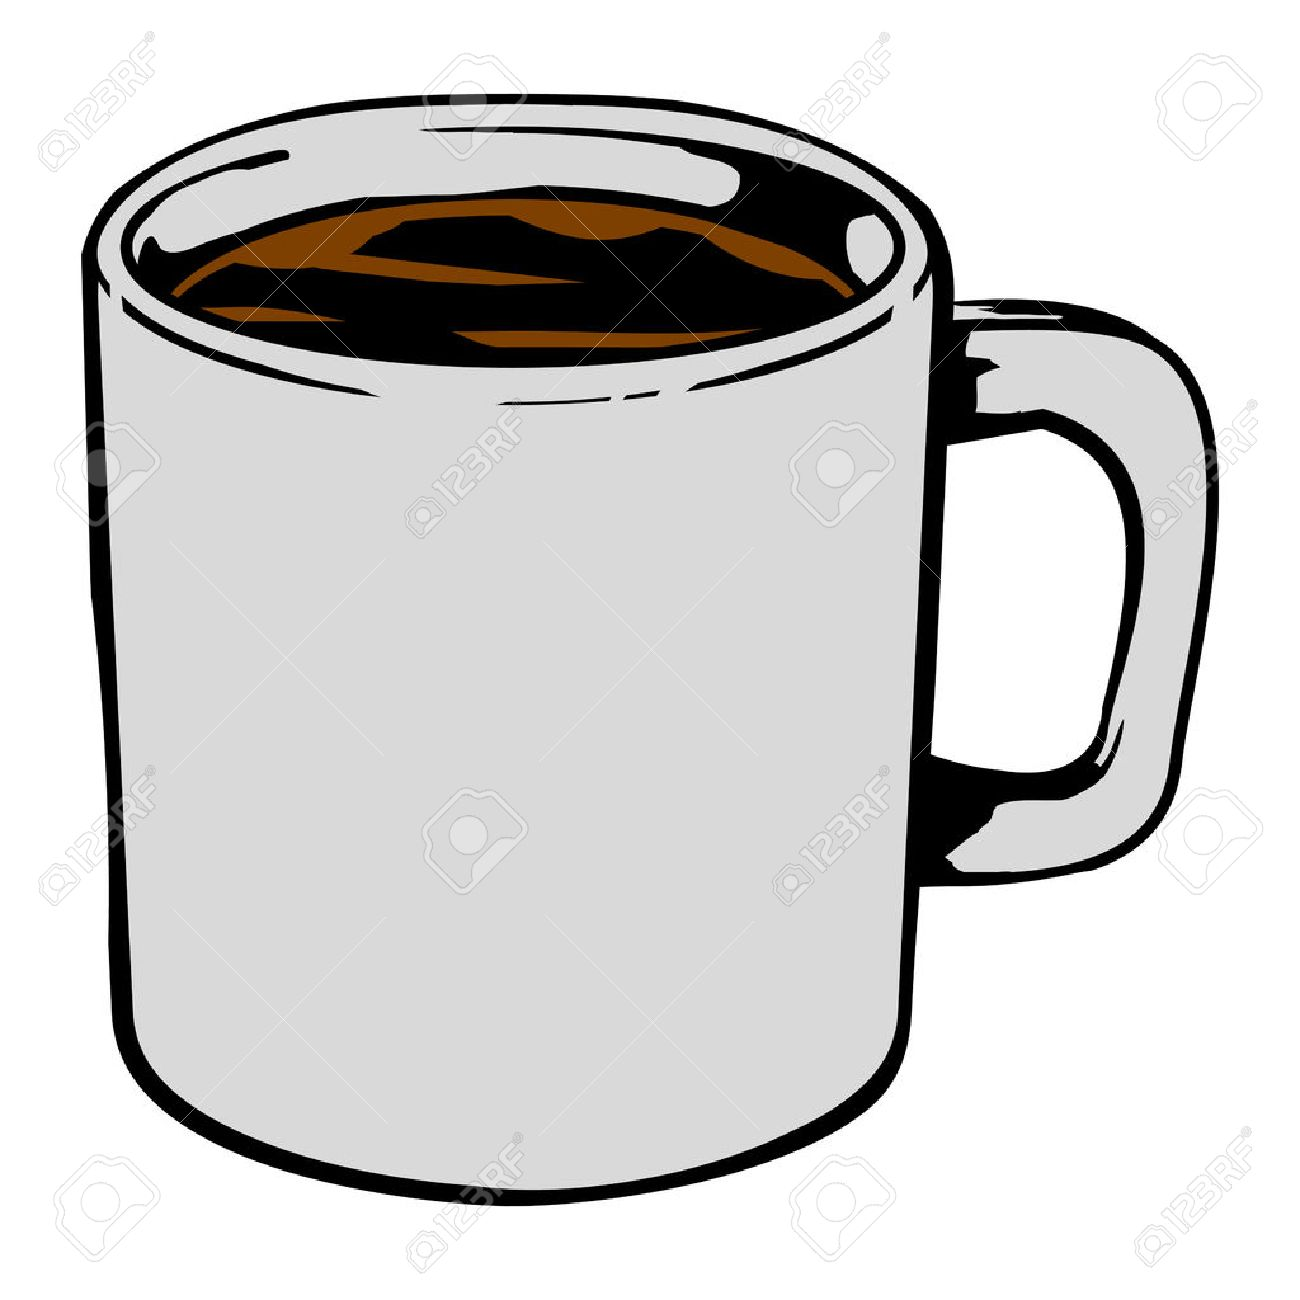 coffee mug vector icon royalty free cliparts vectors and stock rh 123rf com coffee cup vector art coffee cup vector black and white